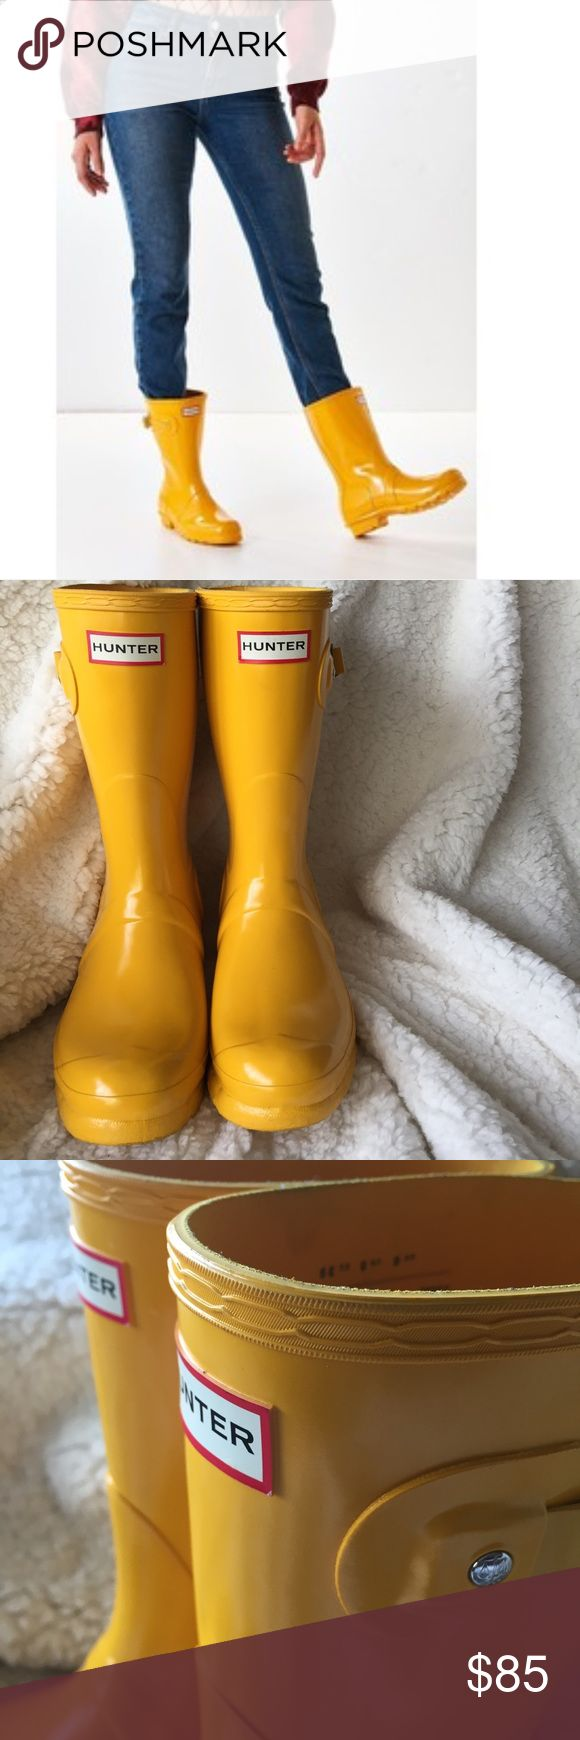 Hunter // Yellow Short Rainboots Can't help but smile with these bright yellow Hunter Rainboots. Perfect with some shorts for running errands or to keep your toesies dry during a spring rainstorm. Worn one season and are in fantastic condition with no damages or blooming. Currently sold at Urban Outfitters. Hunter Shoes Winter & Rain Boots